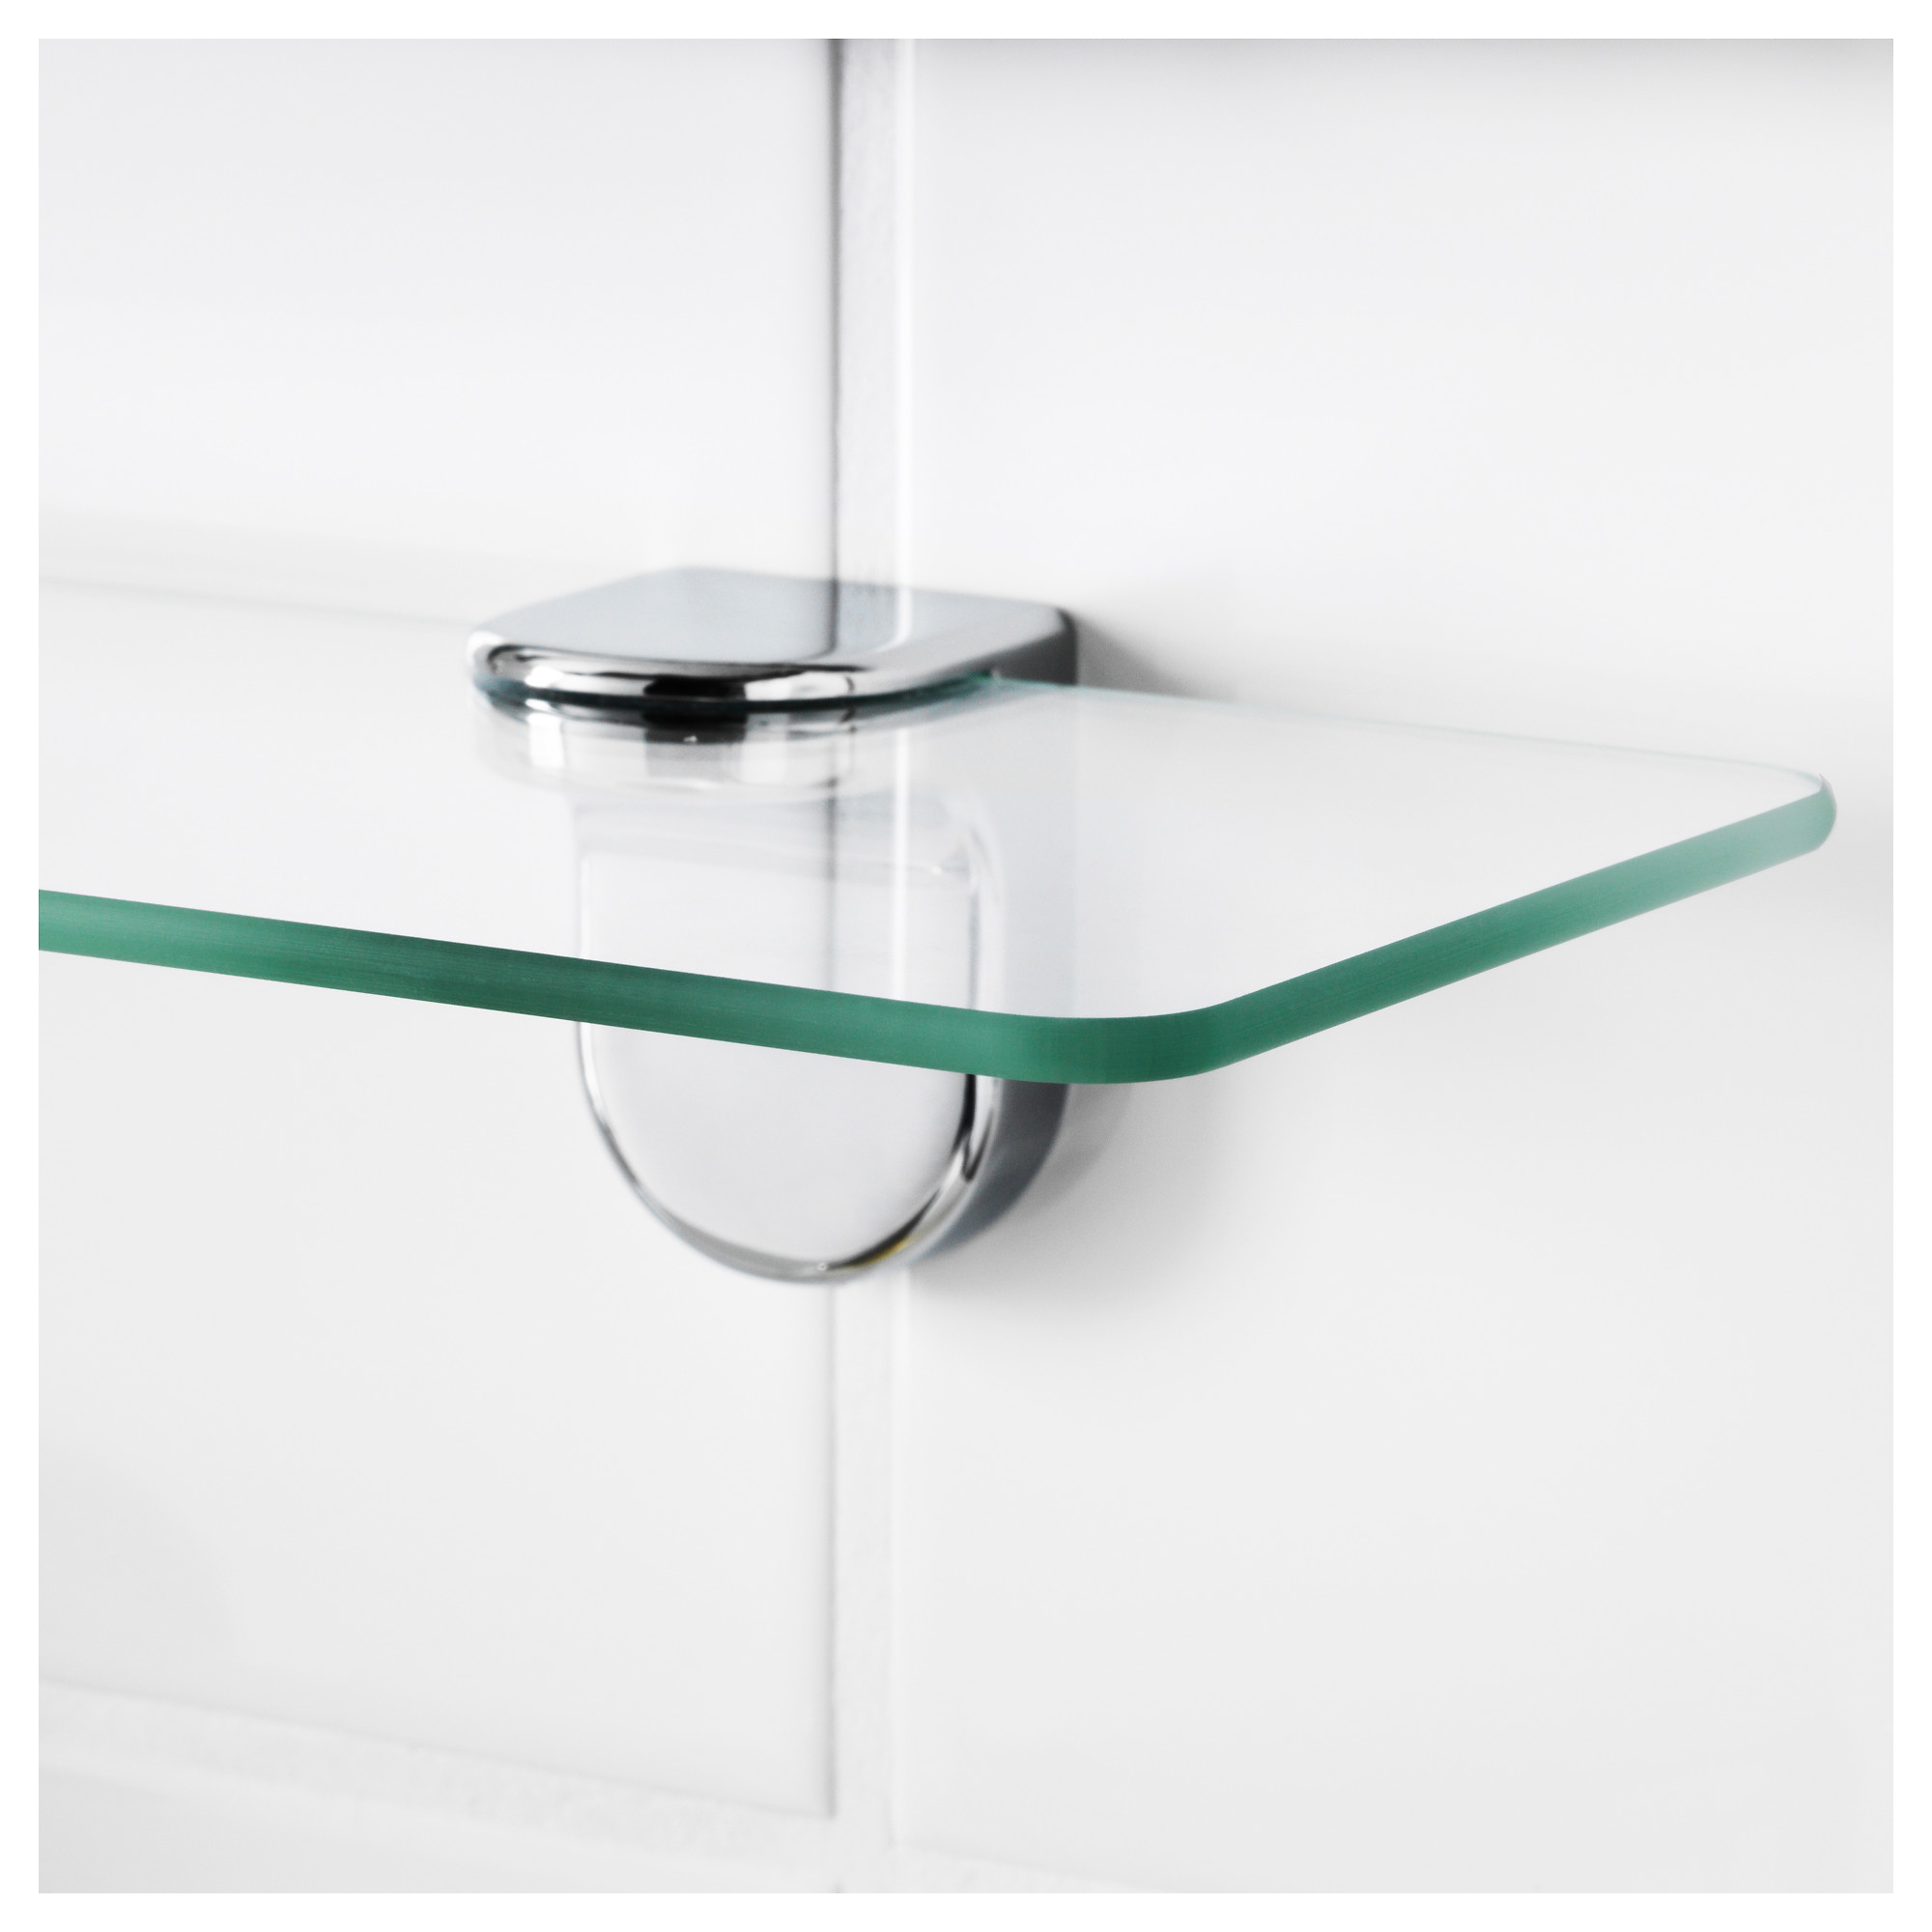 glass shelves ikea kalkgrund glass shelf tempered glass - extra resistant to heat, impact FTNHKMN